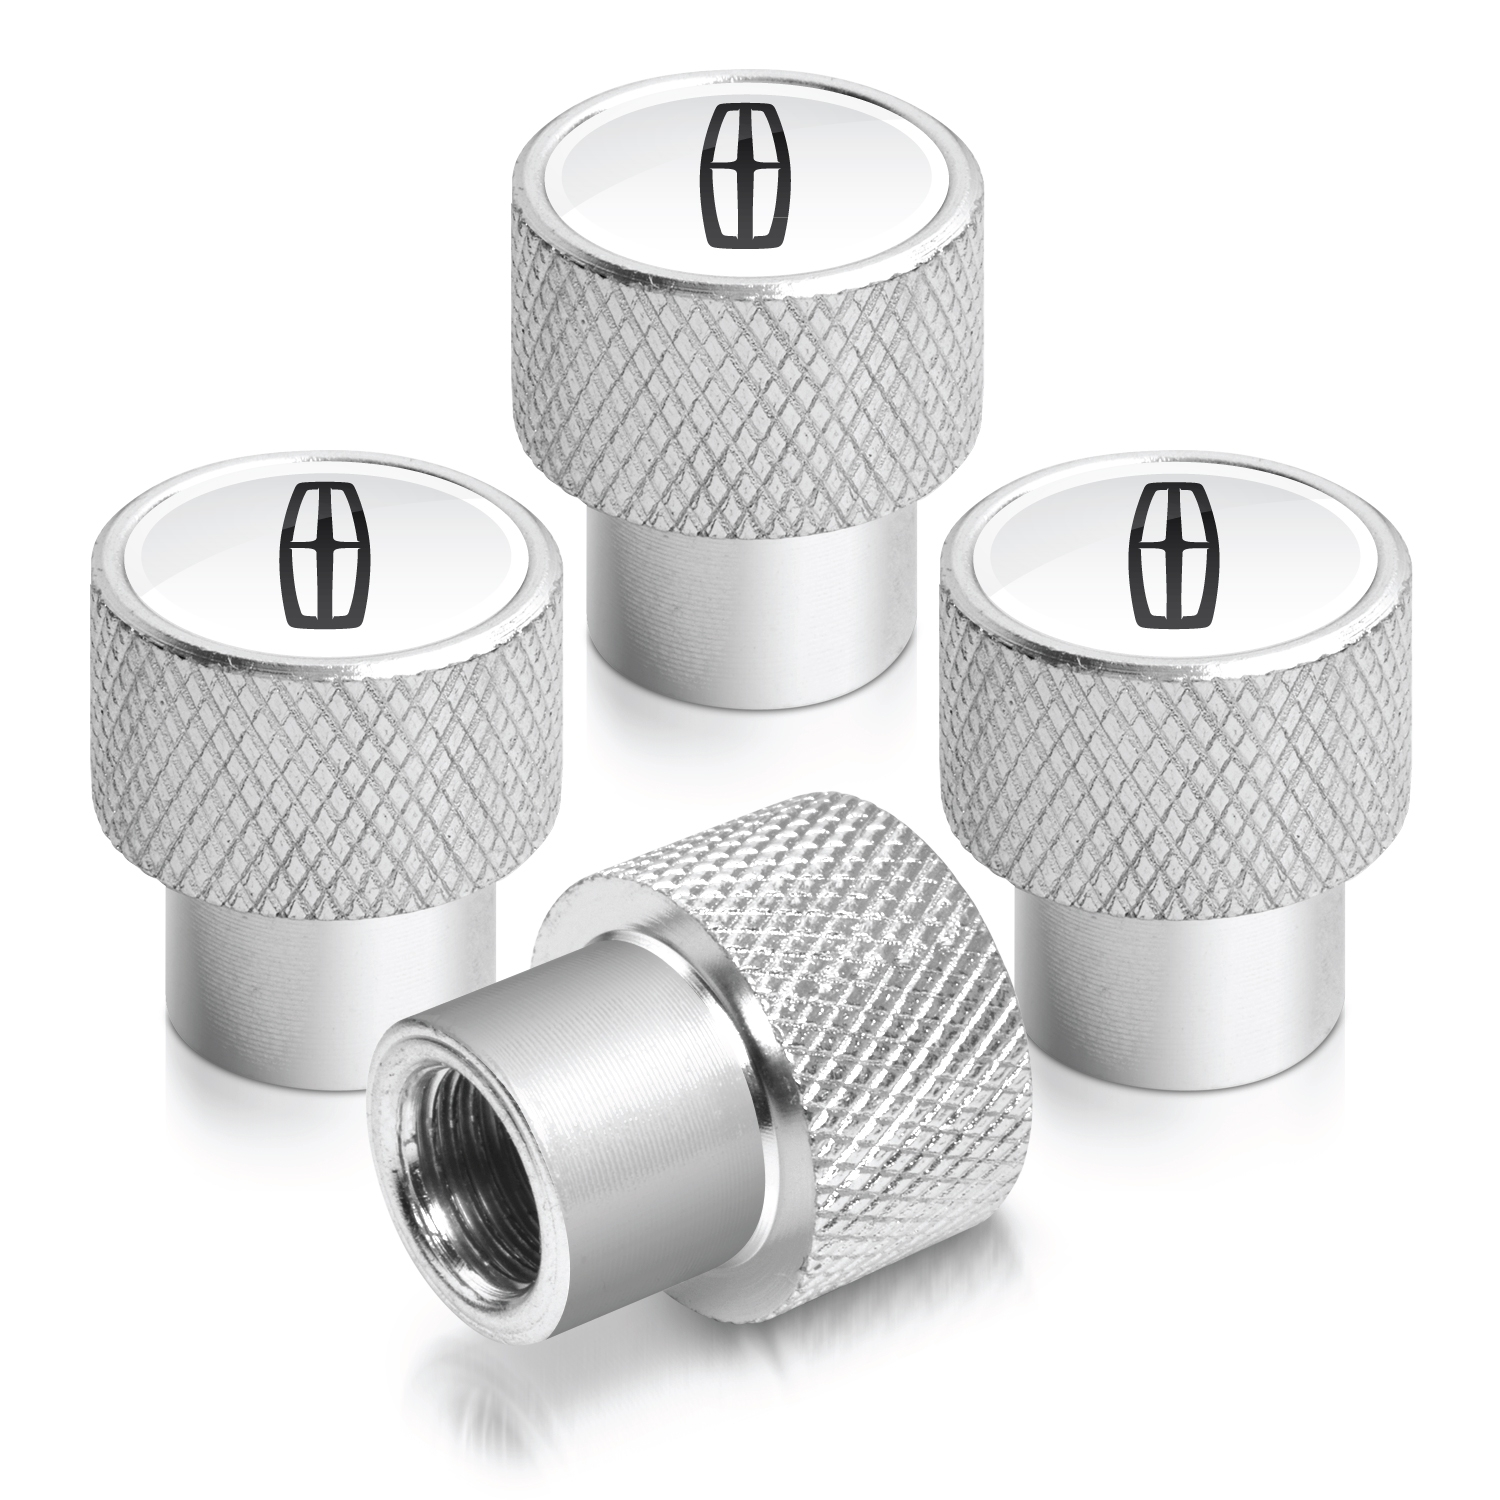 Lincoln logo in White on Shining Silver Aluminum Tire Valve Stem Caps